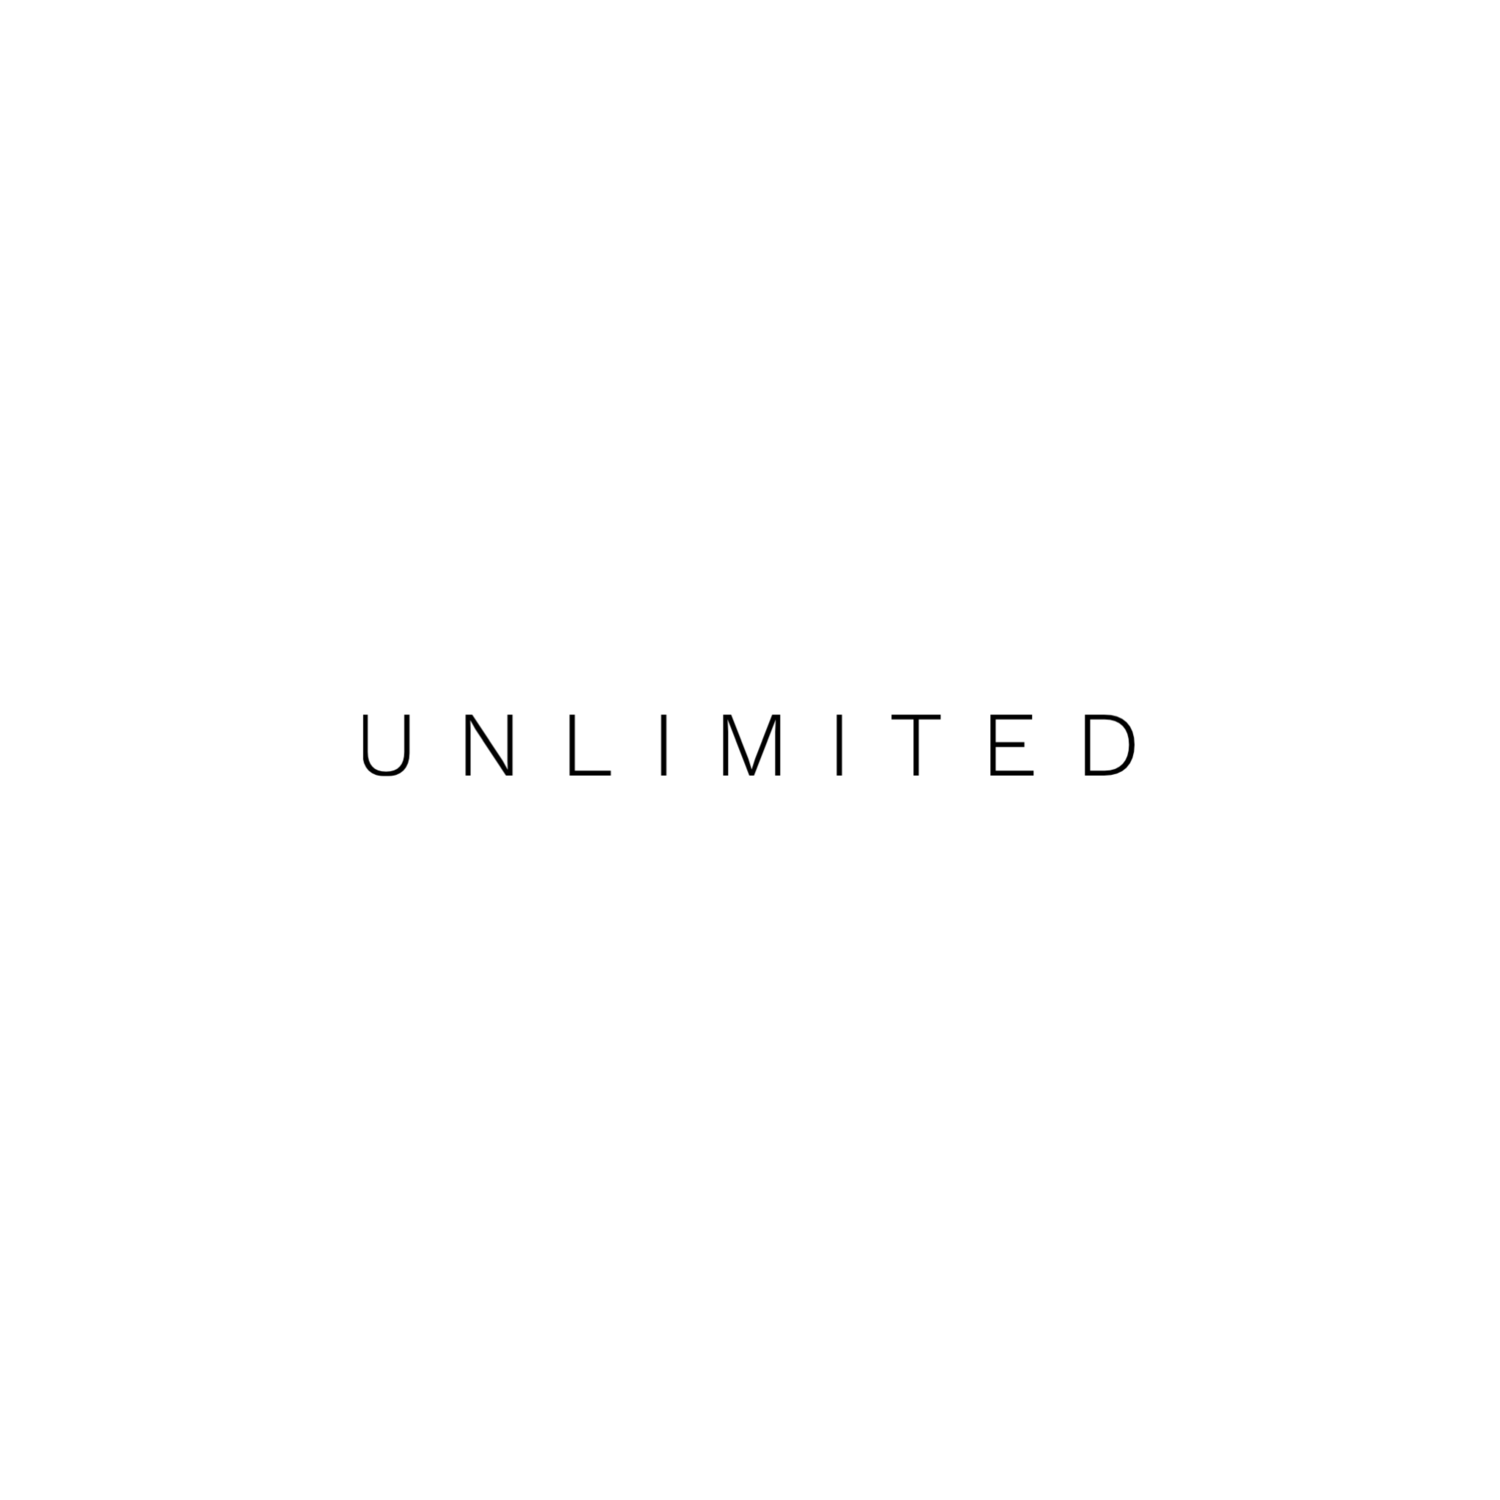 The Unlimited Effect